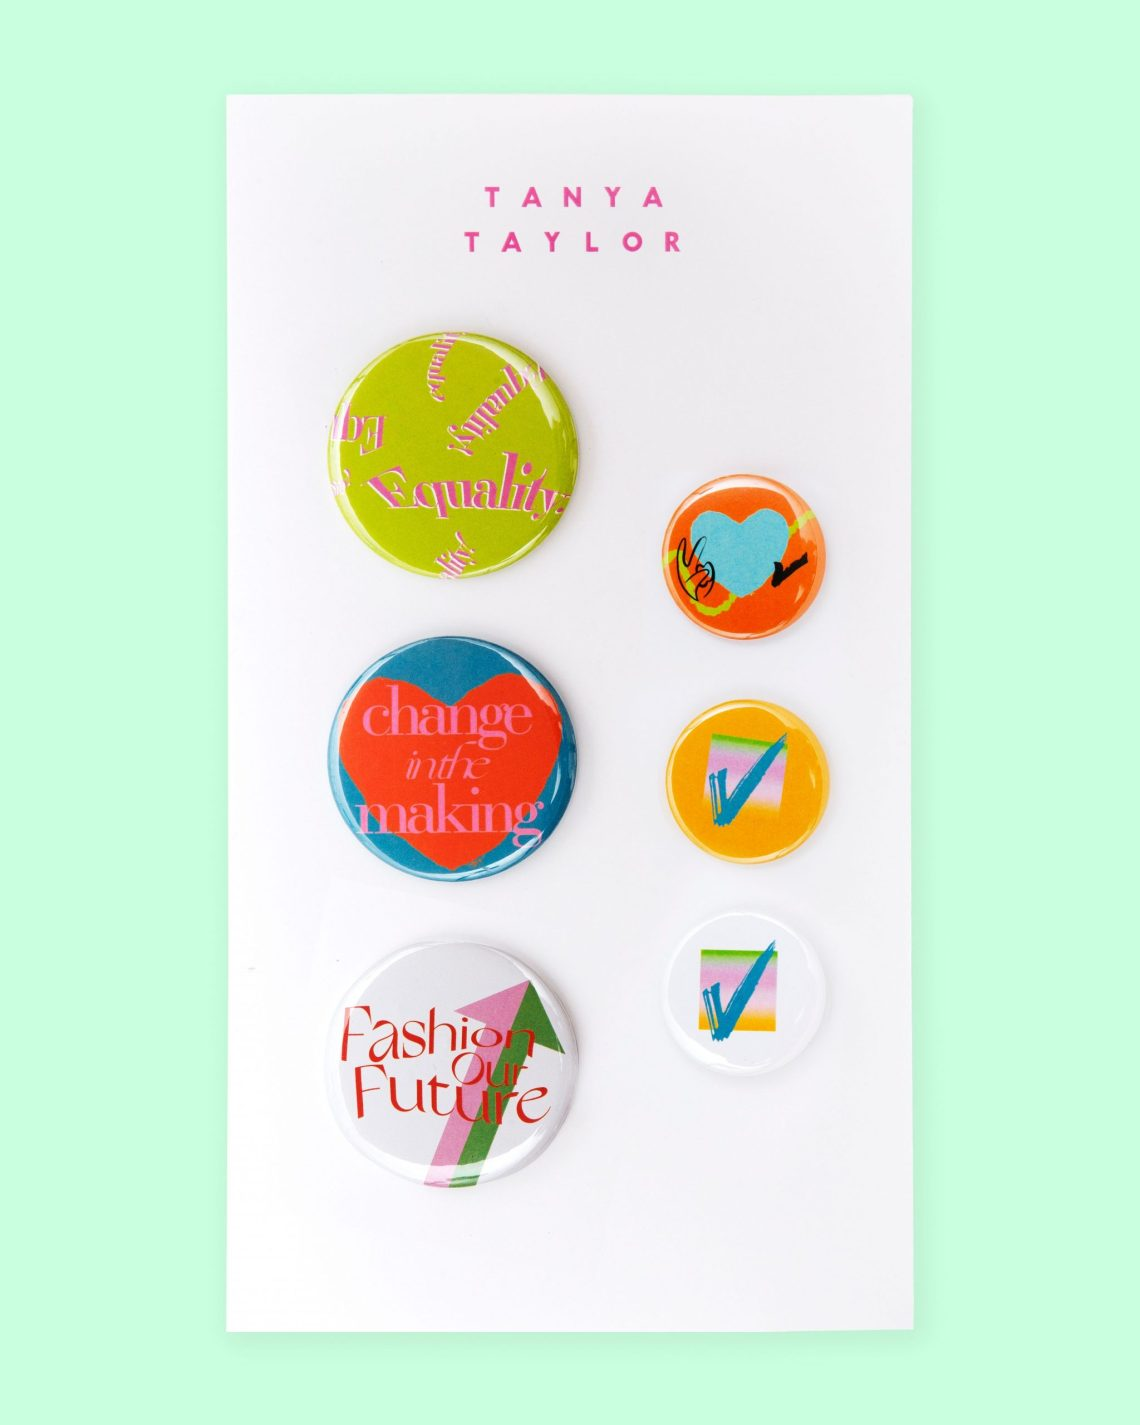 Tanya Taylor Buttons, presented by Visa ($40)